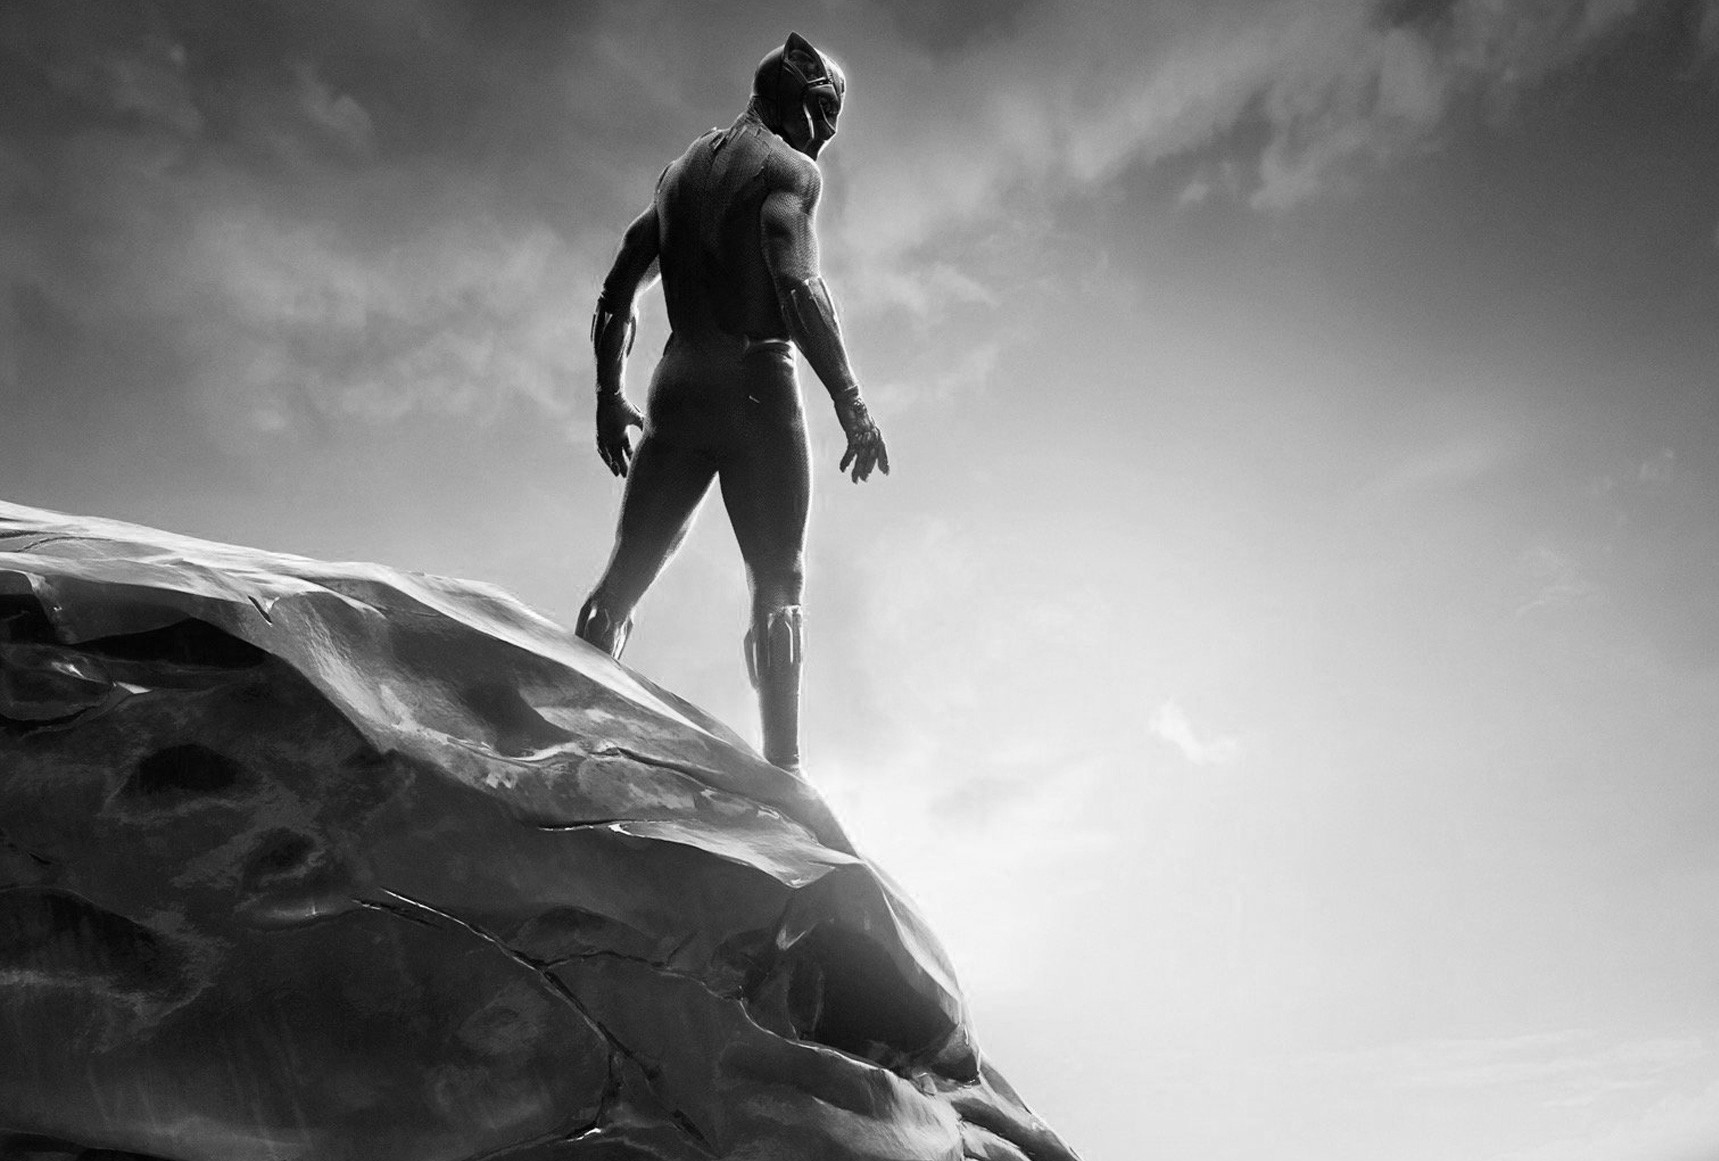 Black Panther 2018 Movie Still Full Hd Wallpaper: Every Day Movie 2018 Wallpapers